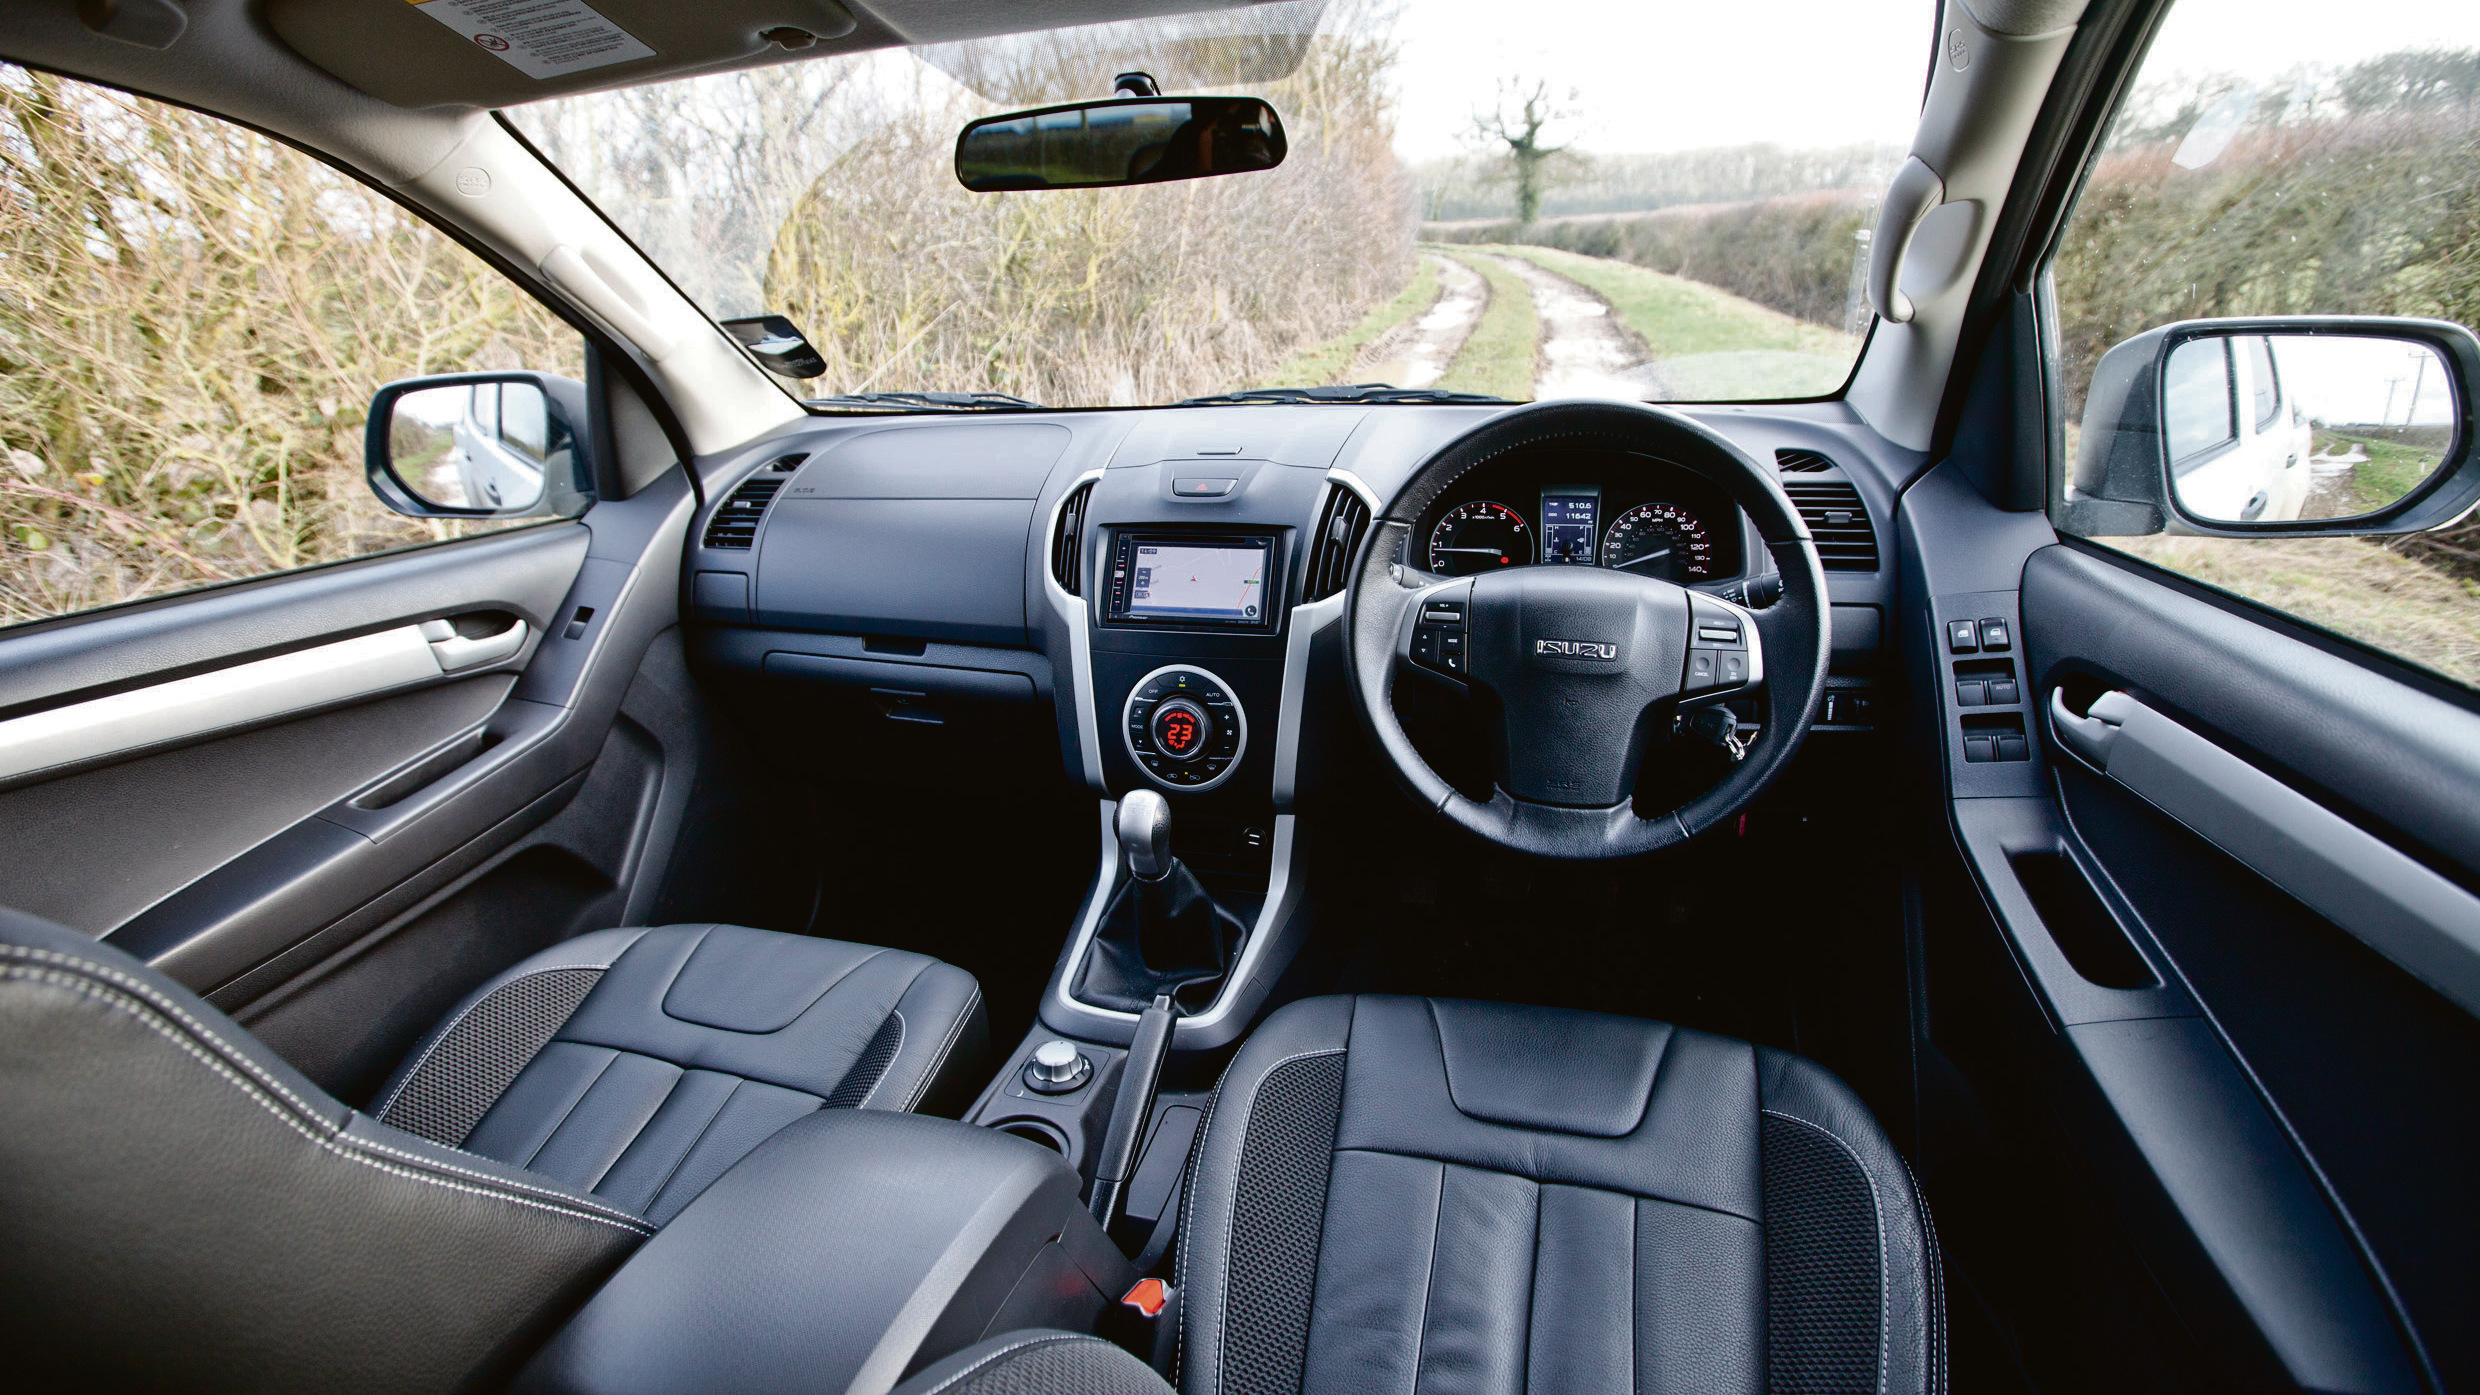 Inside the D-max